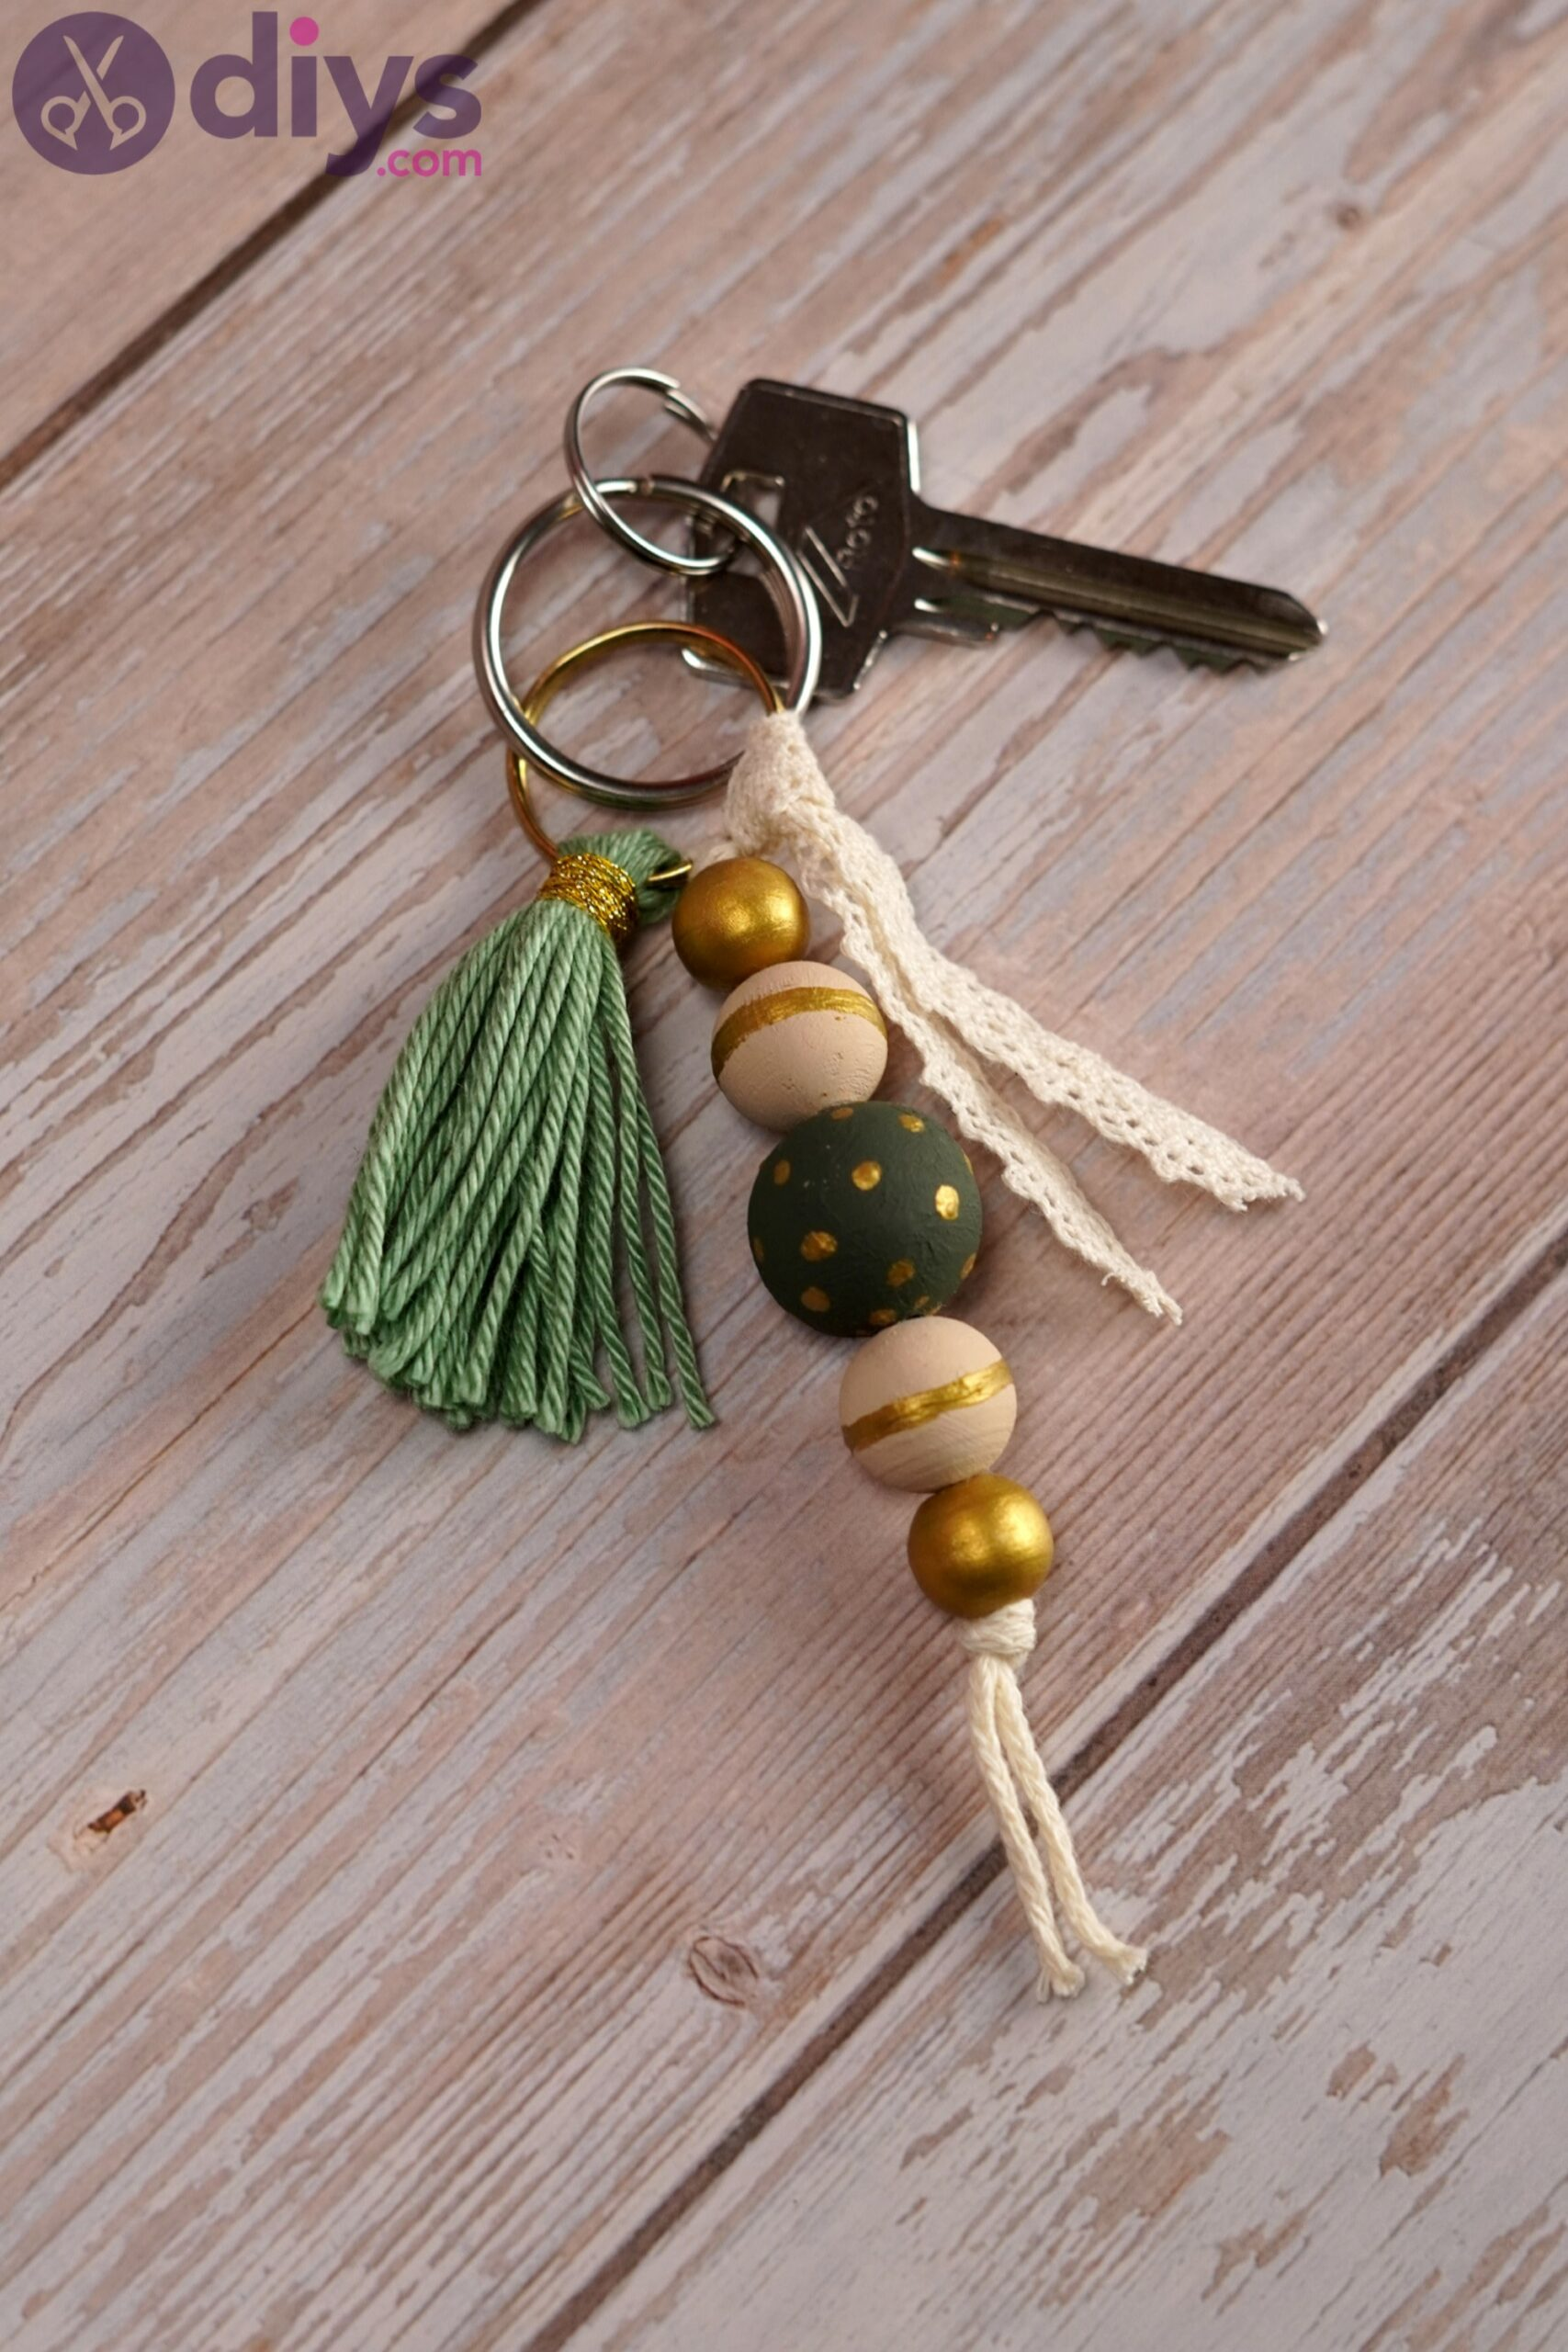 Wooden bead key chain photos (3)